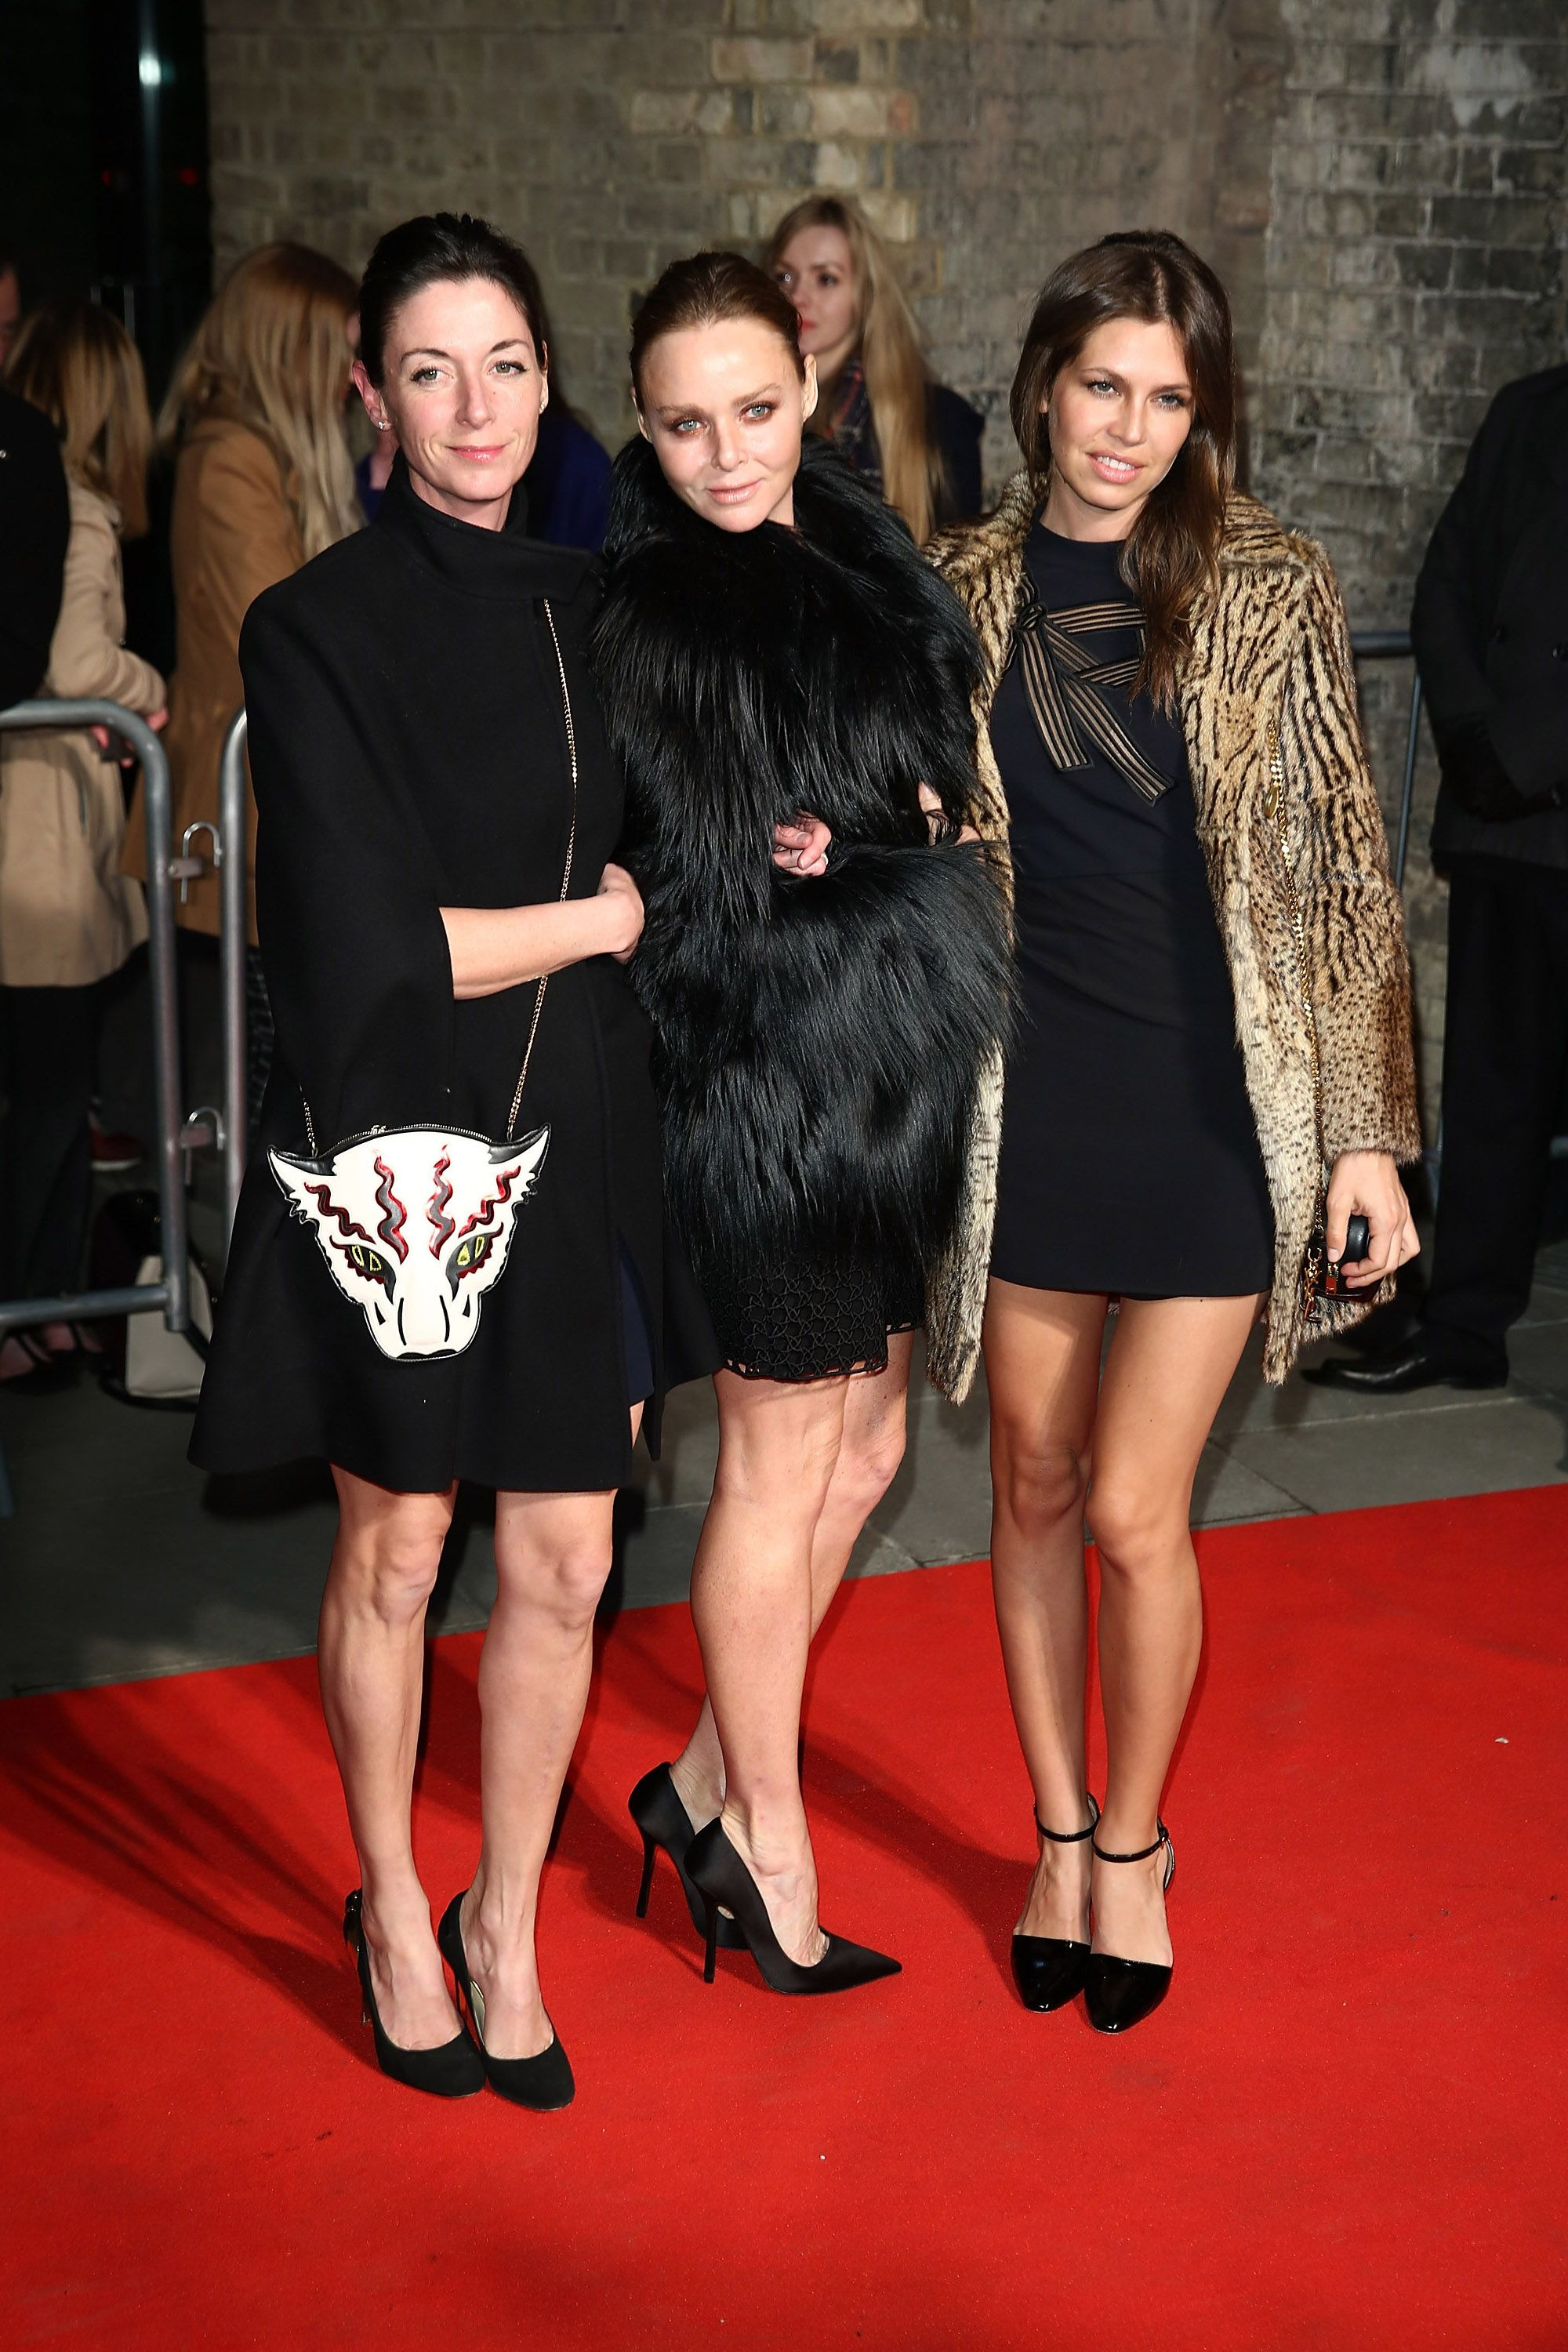 LONDON, ENGLAND - FEBRUARY 24:  (L-R) Mary McCartney, Stella McCartney and Dasha Zhukova attend The World's First Fabulous Fund Fair in aid of The Naked Heart Foundation at The Roundhouse on February 24, 2015 in London, England.  (Photo by Tim Whitby/Getty Images)